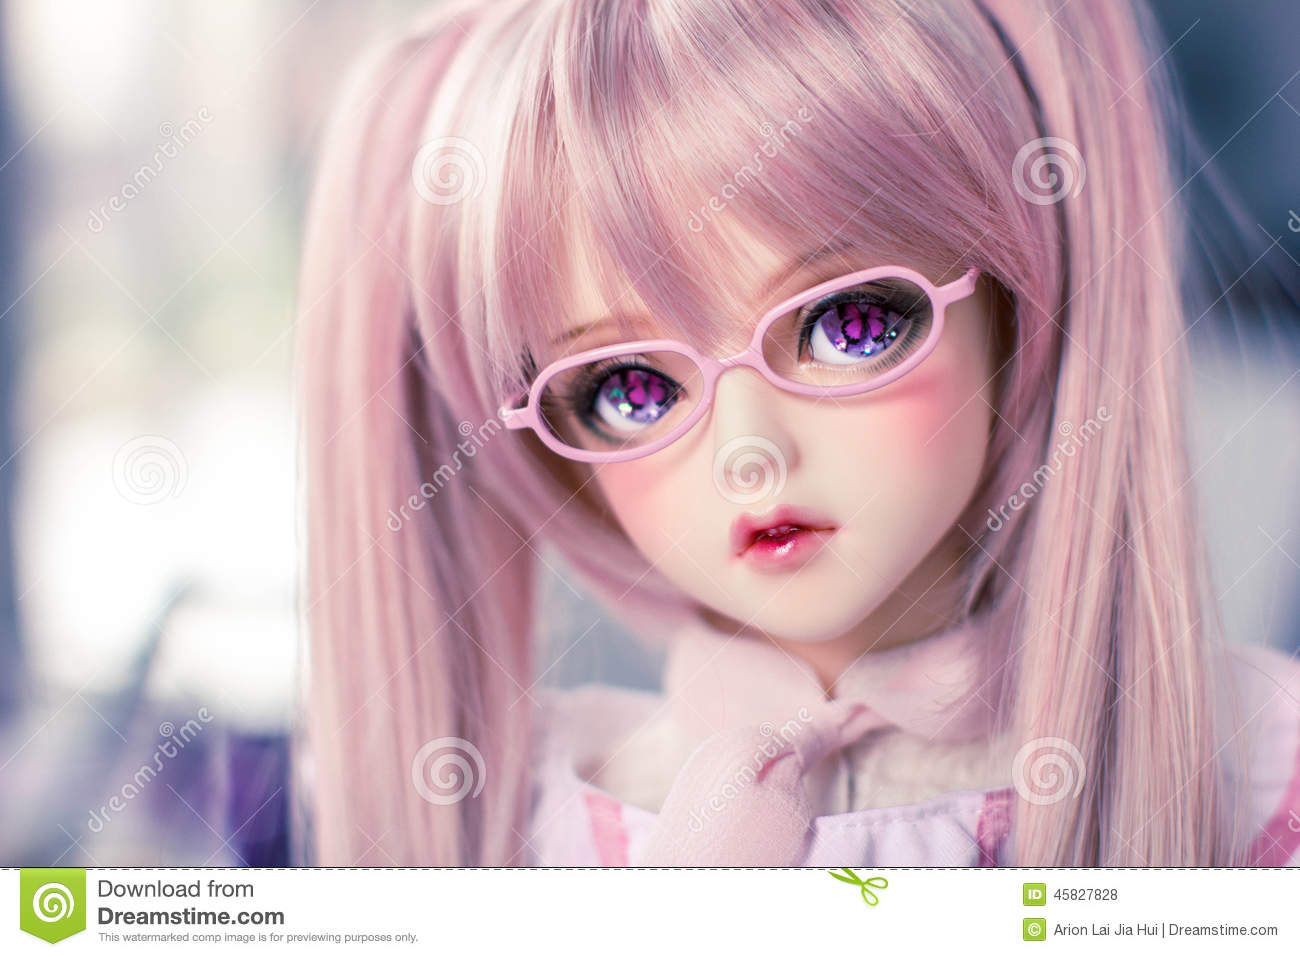 Ball Jointed Doll Butterfly Eyes